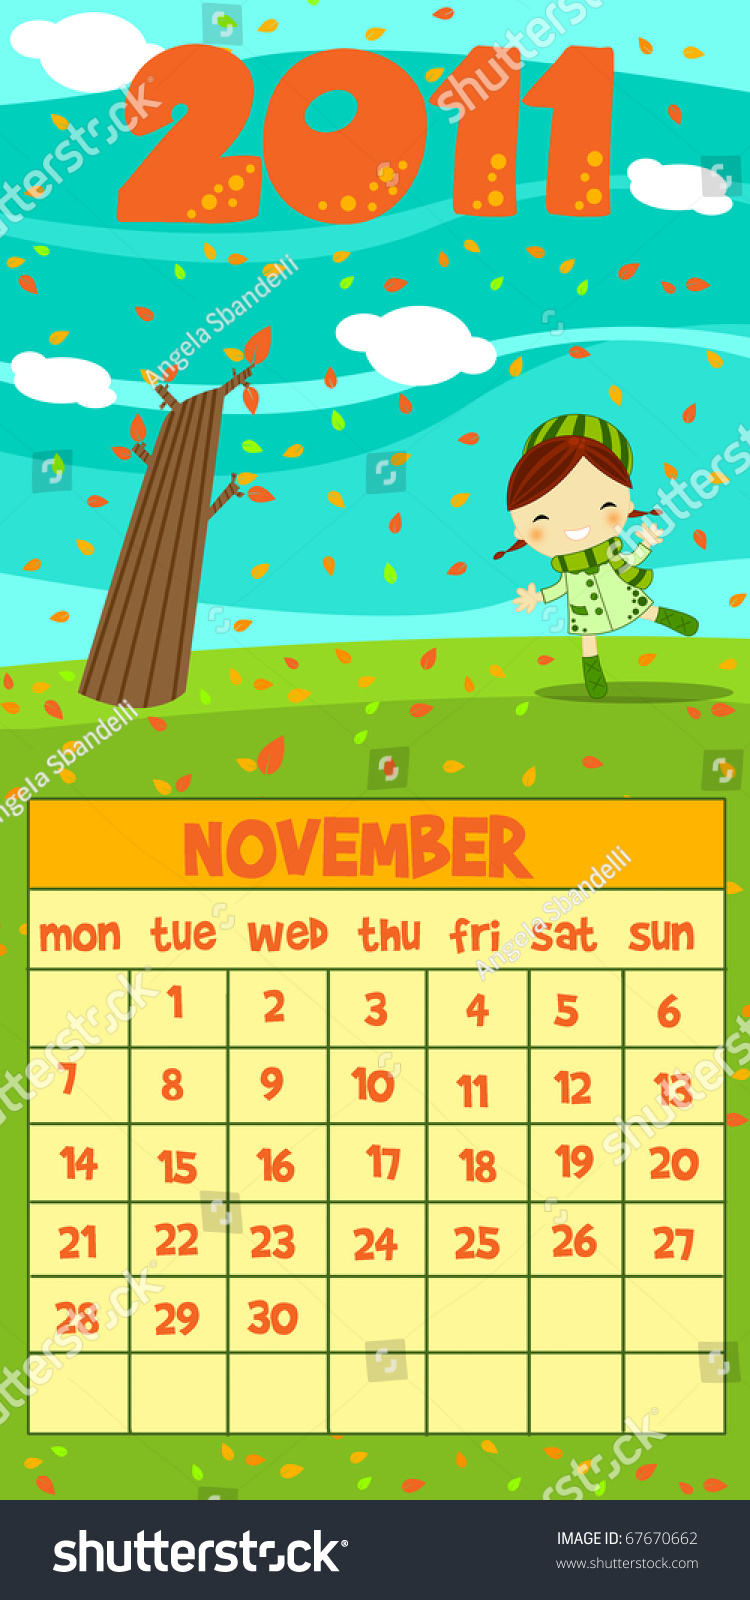 Next Year Calendar : Next year monthly calendar november stock photo